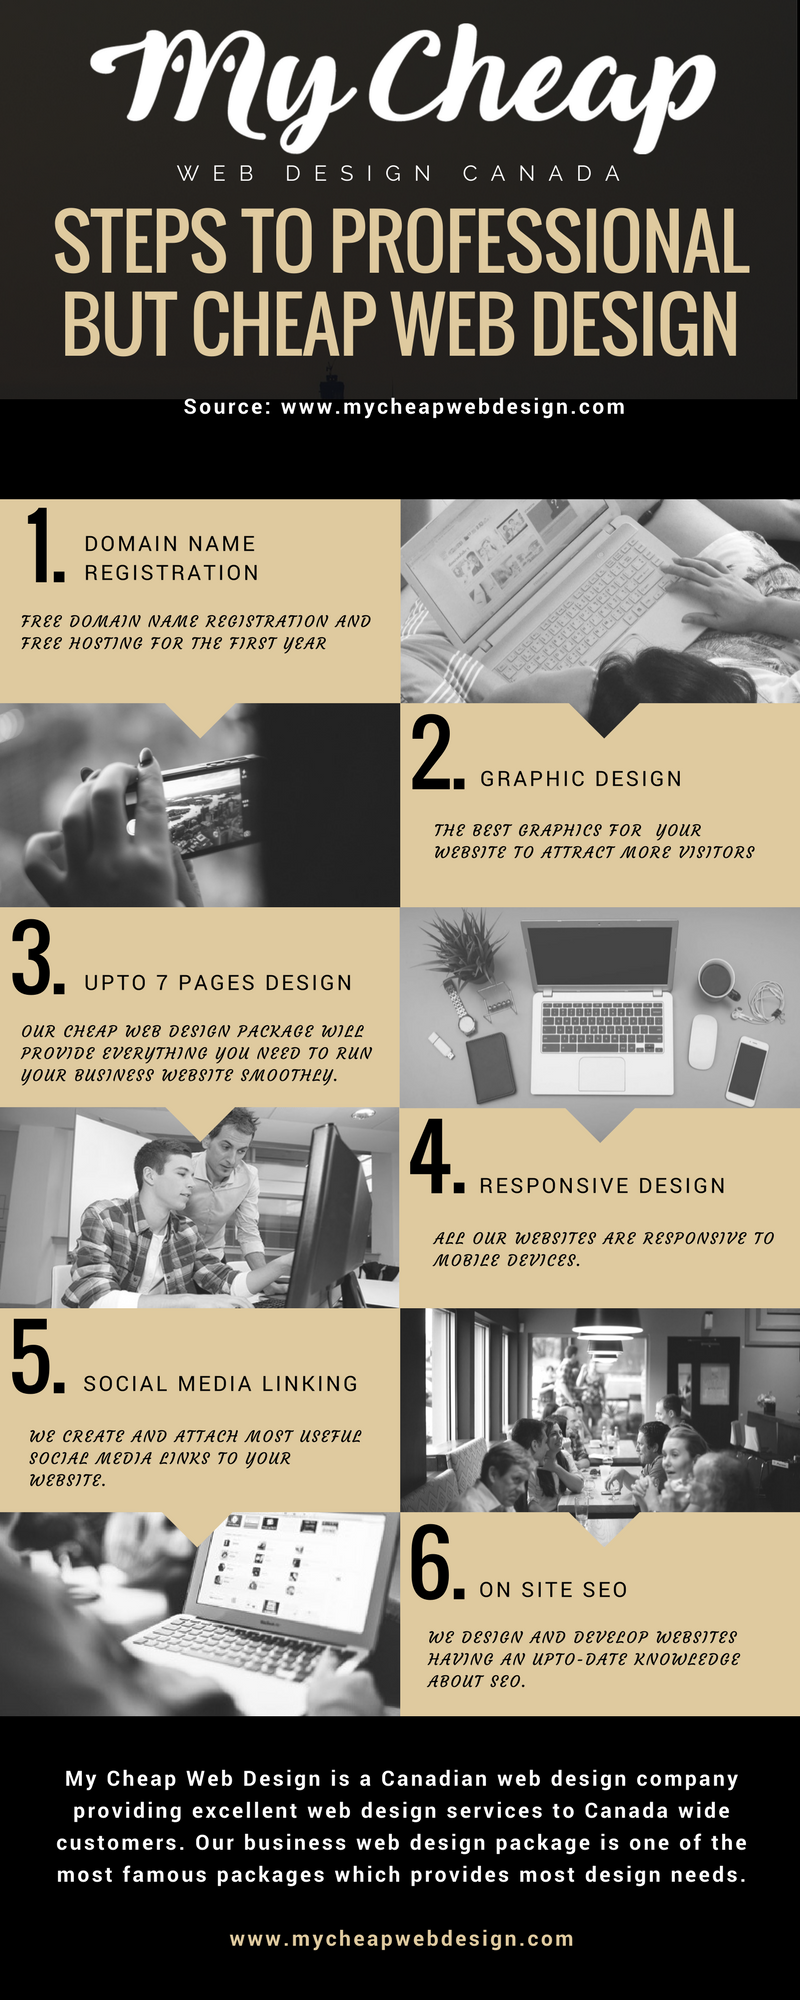 Affordable Website Design In Vancouver Providing Everything You Need To Start Your Business Website We Provid Cheap Web Design Web Design Packages Web Design